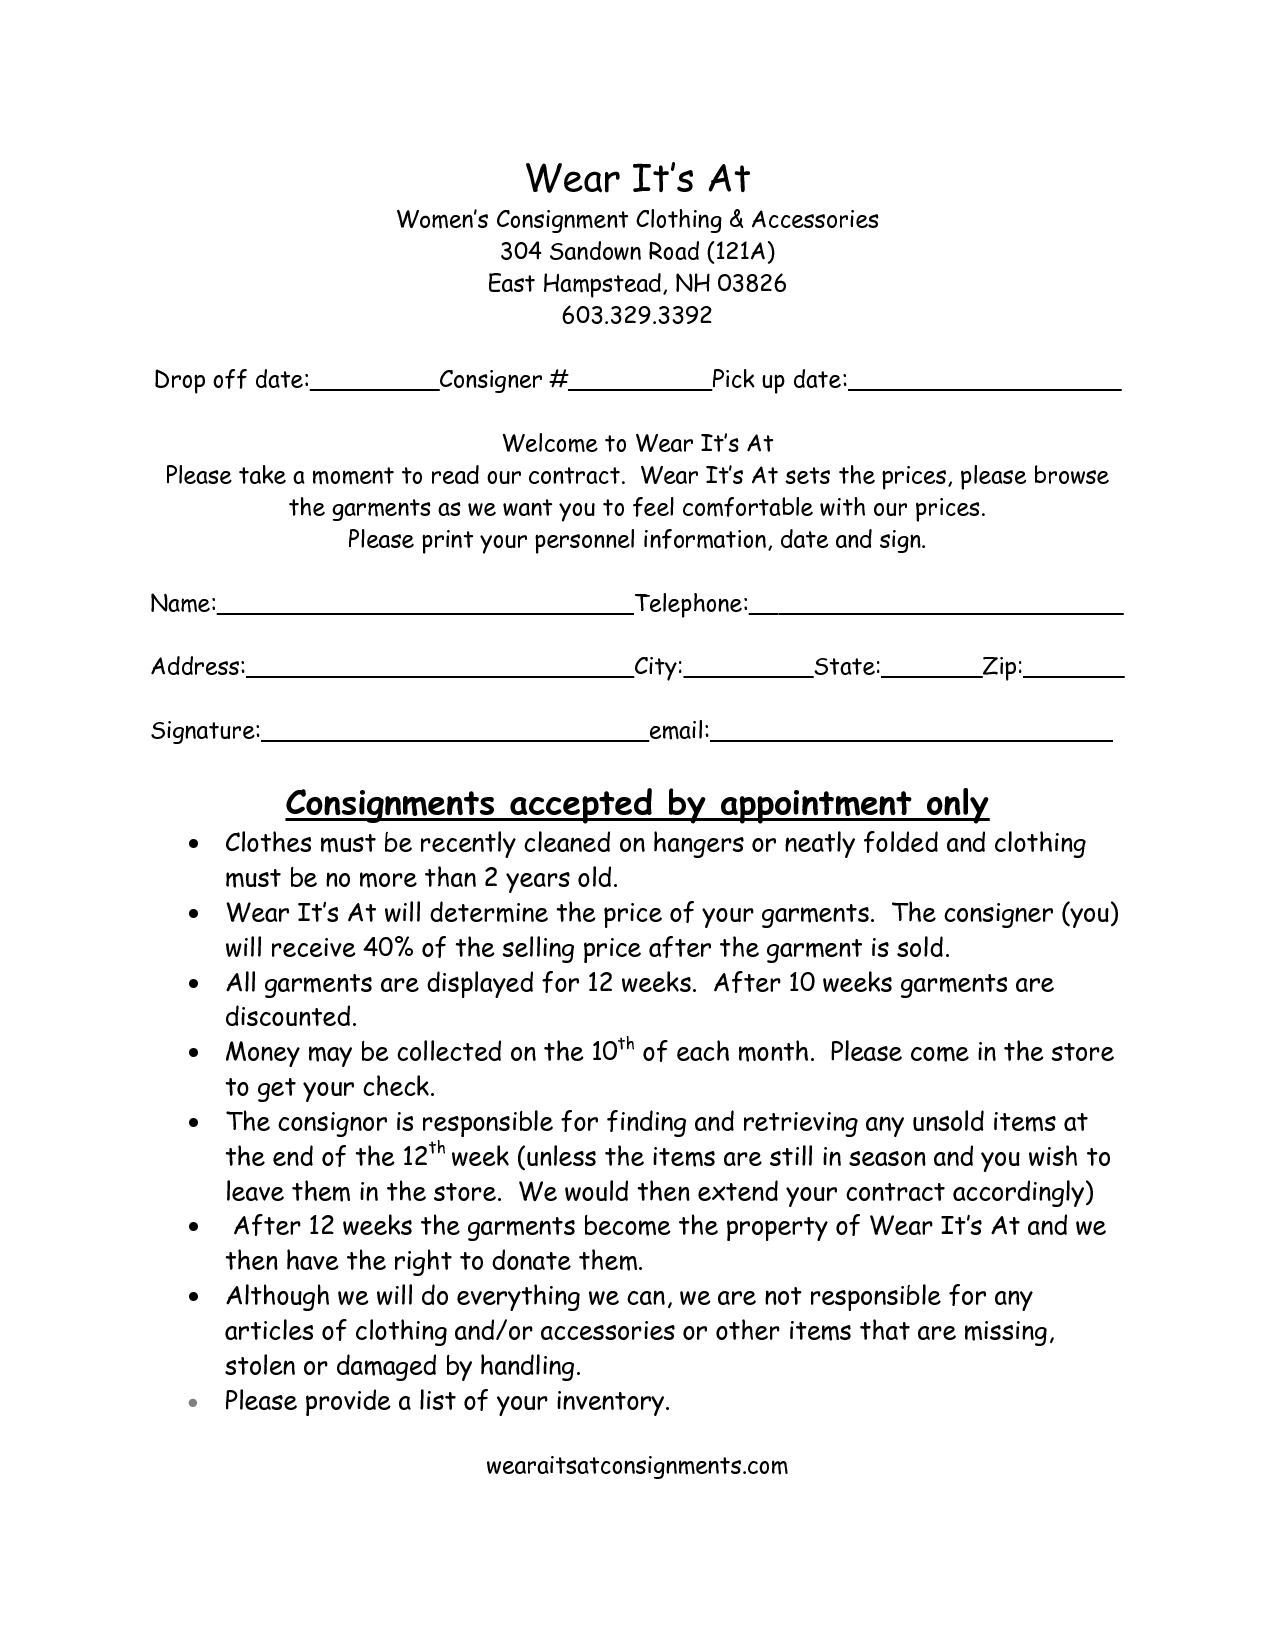 Clothing consignment contract template scope of work for Consignment shop contract template